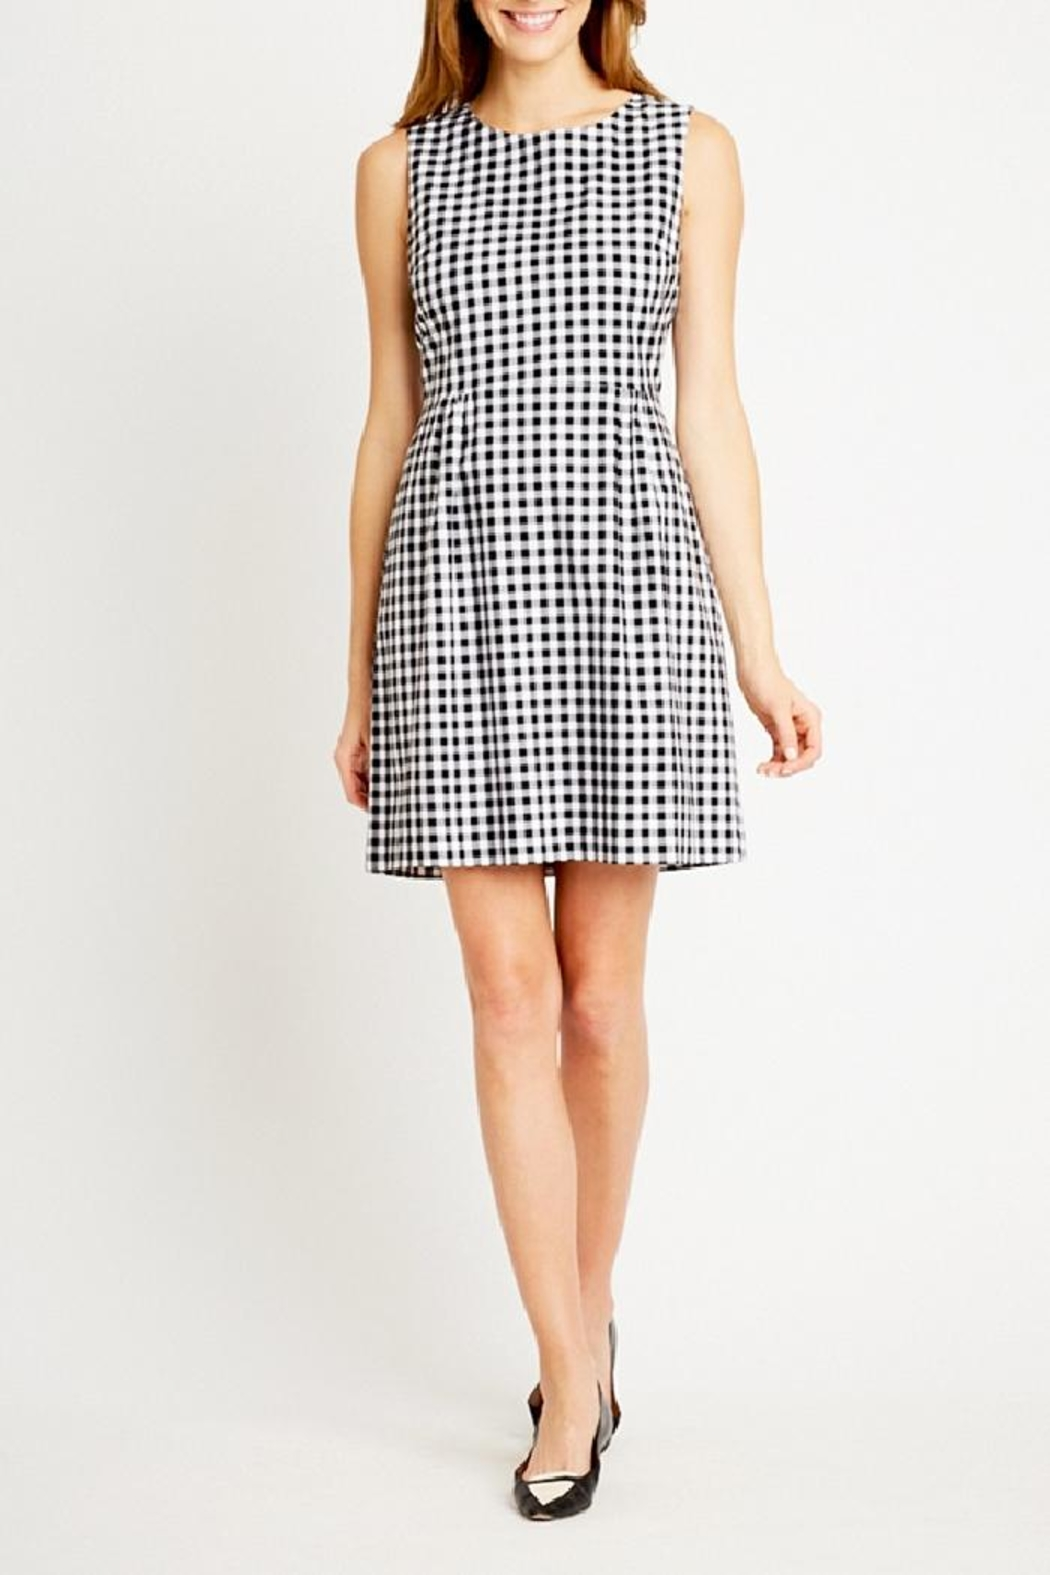 Tyler Boe Claire Gingham Dress - Side Cropped Image